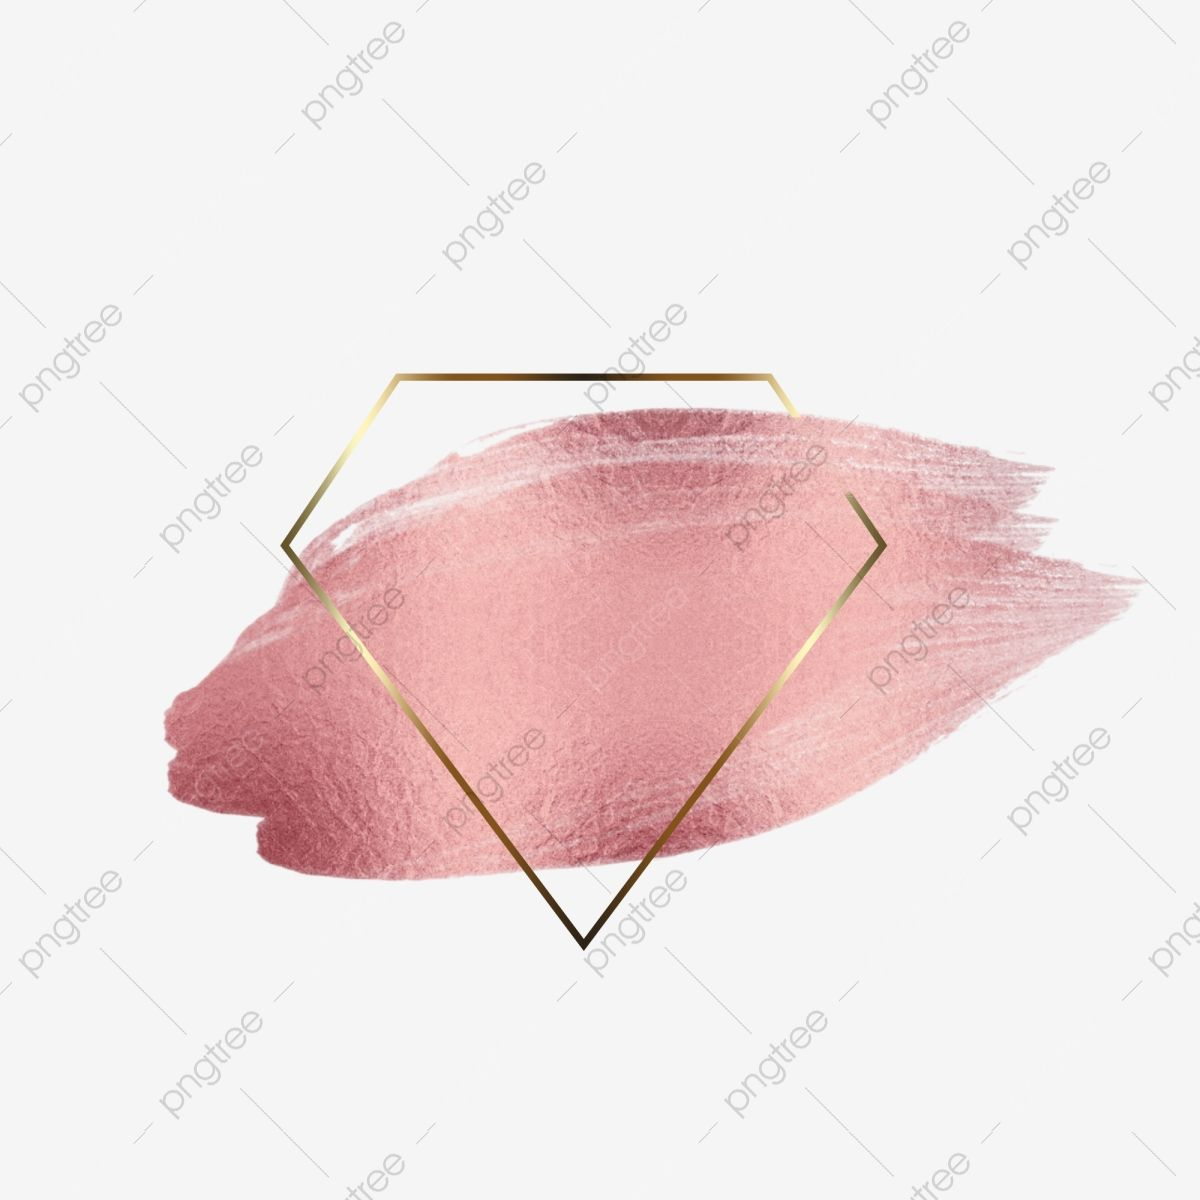 Diamond Gold Frame Png Transparent Gold Abstract Gold Png Png Transparent Clipart Image And Psd File For Free Download Geometric Rose Diamond Logo Diamond Pattern